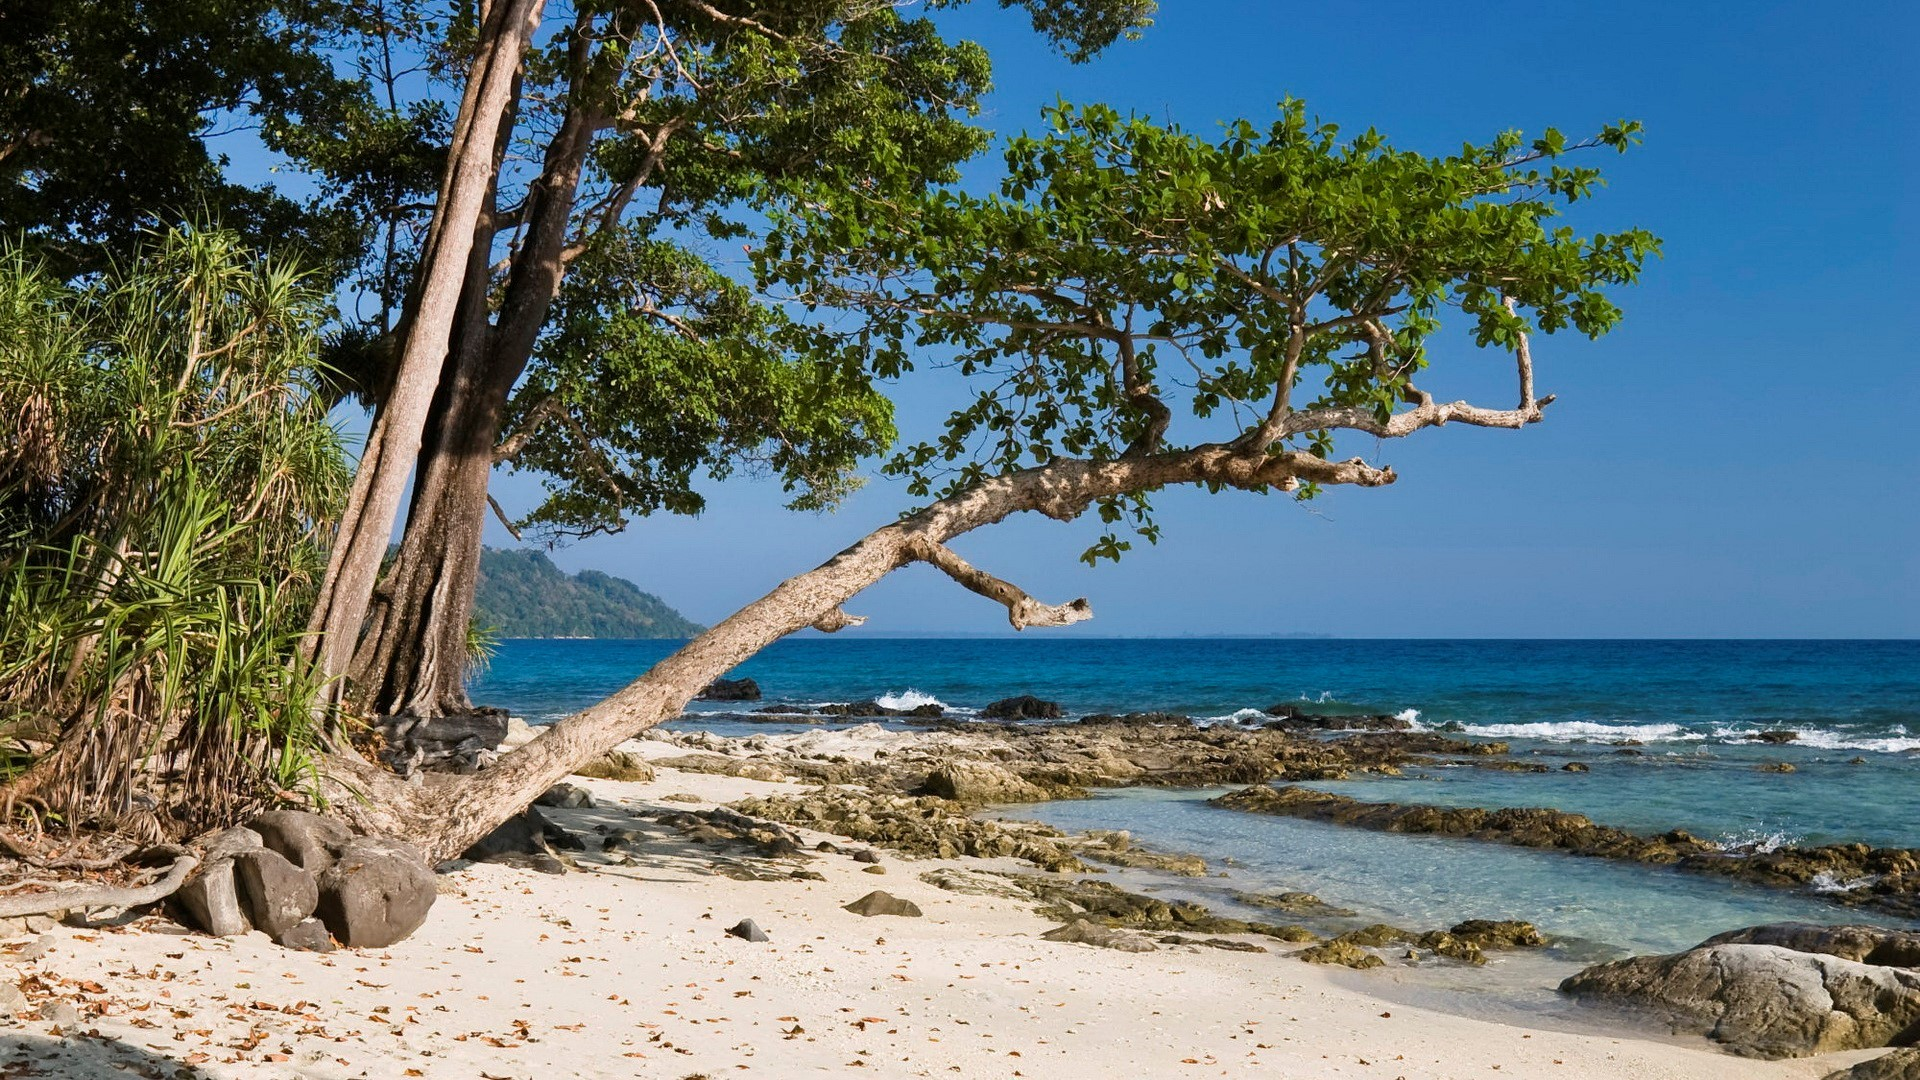 Tree on Beach Wallpapers